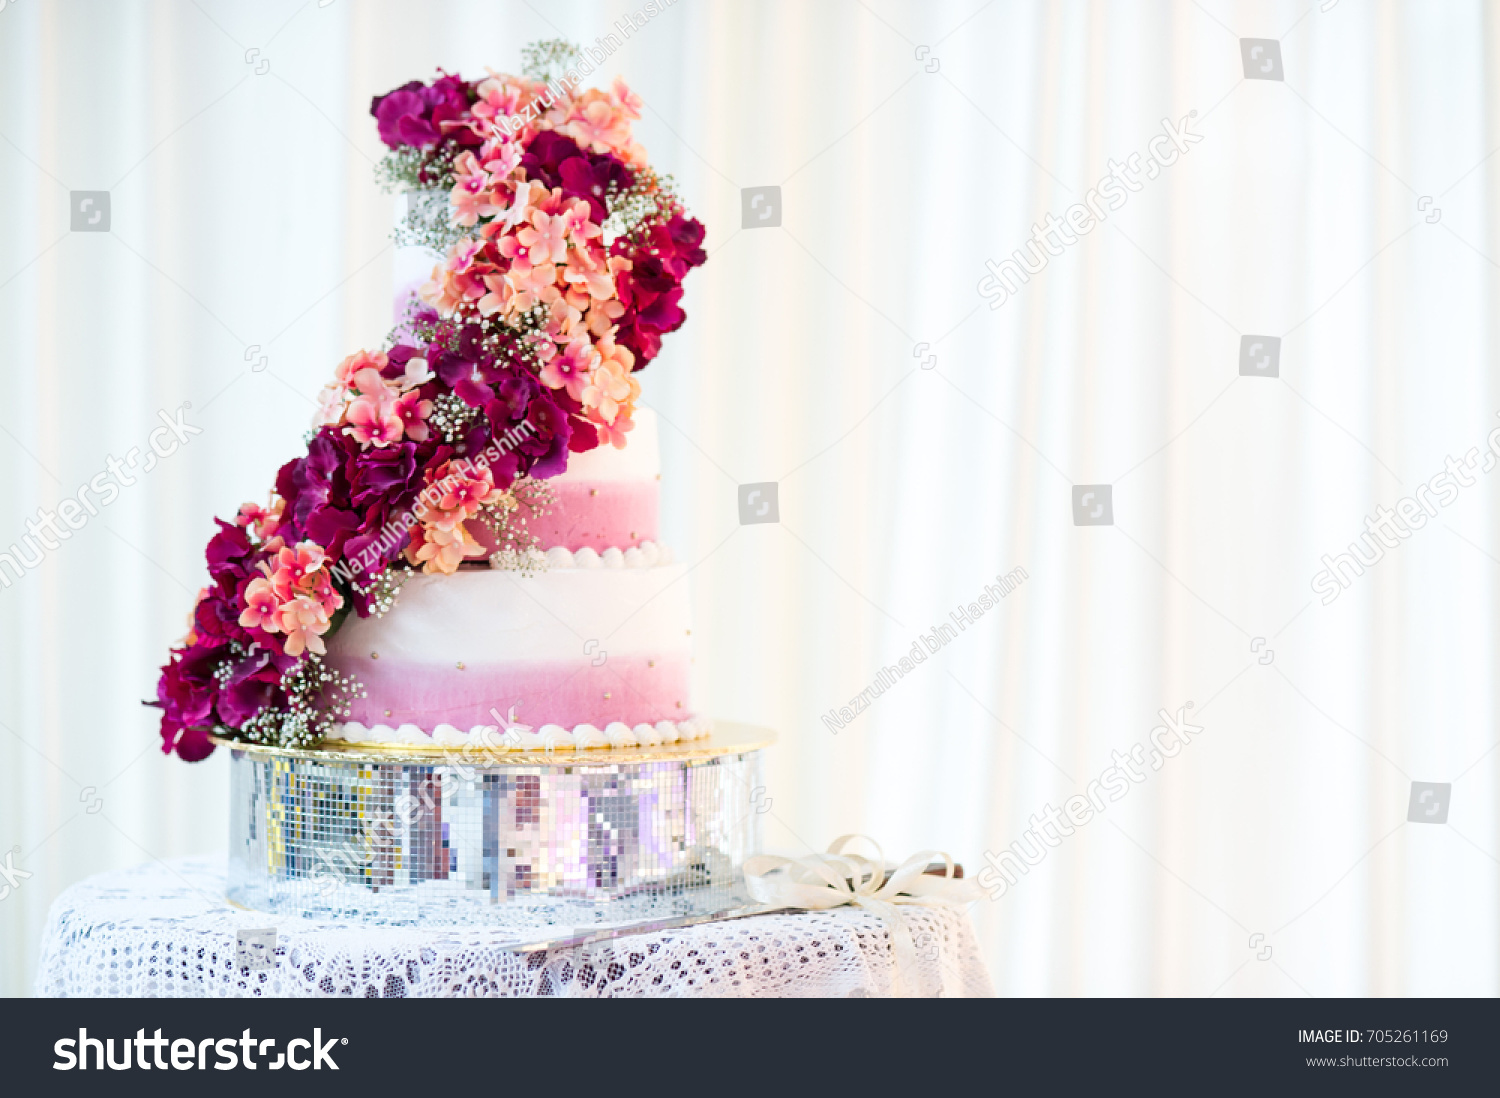 White Wedding Cake Red Flowers Stock Photo (Royalty Free) 705261169 ...